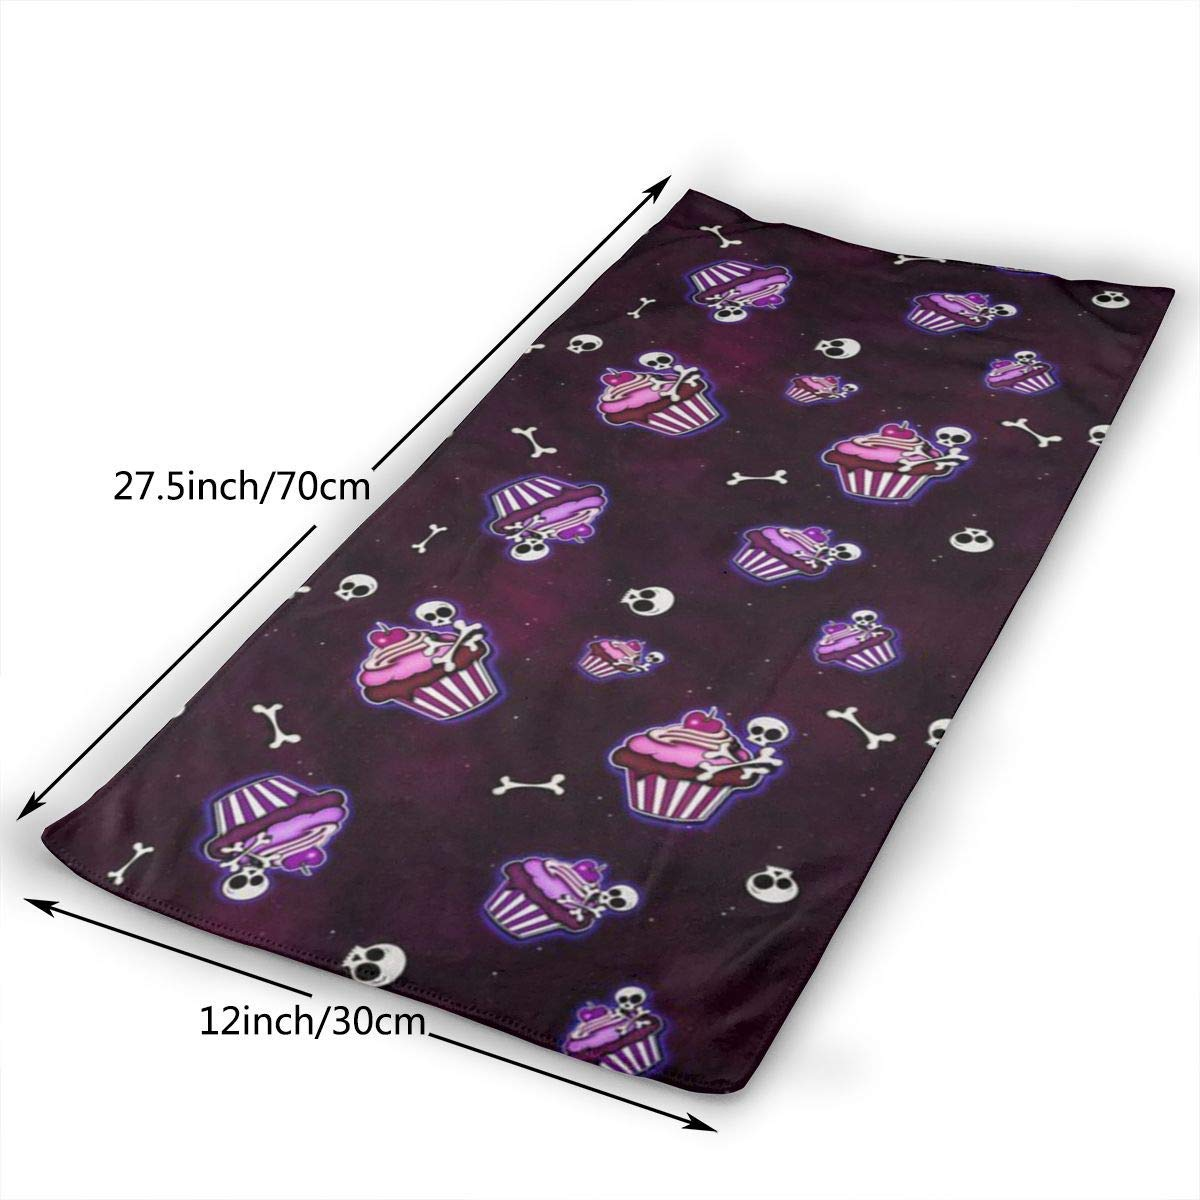 ewtretr Prime Torchons De Cuisine,Bones and Cupcakes in Space Microfiber Beach Towel Large 11.8X27.5 Towels Best for Outdoor Sports Quick Drying and Super Absorbent Technology Travels